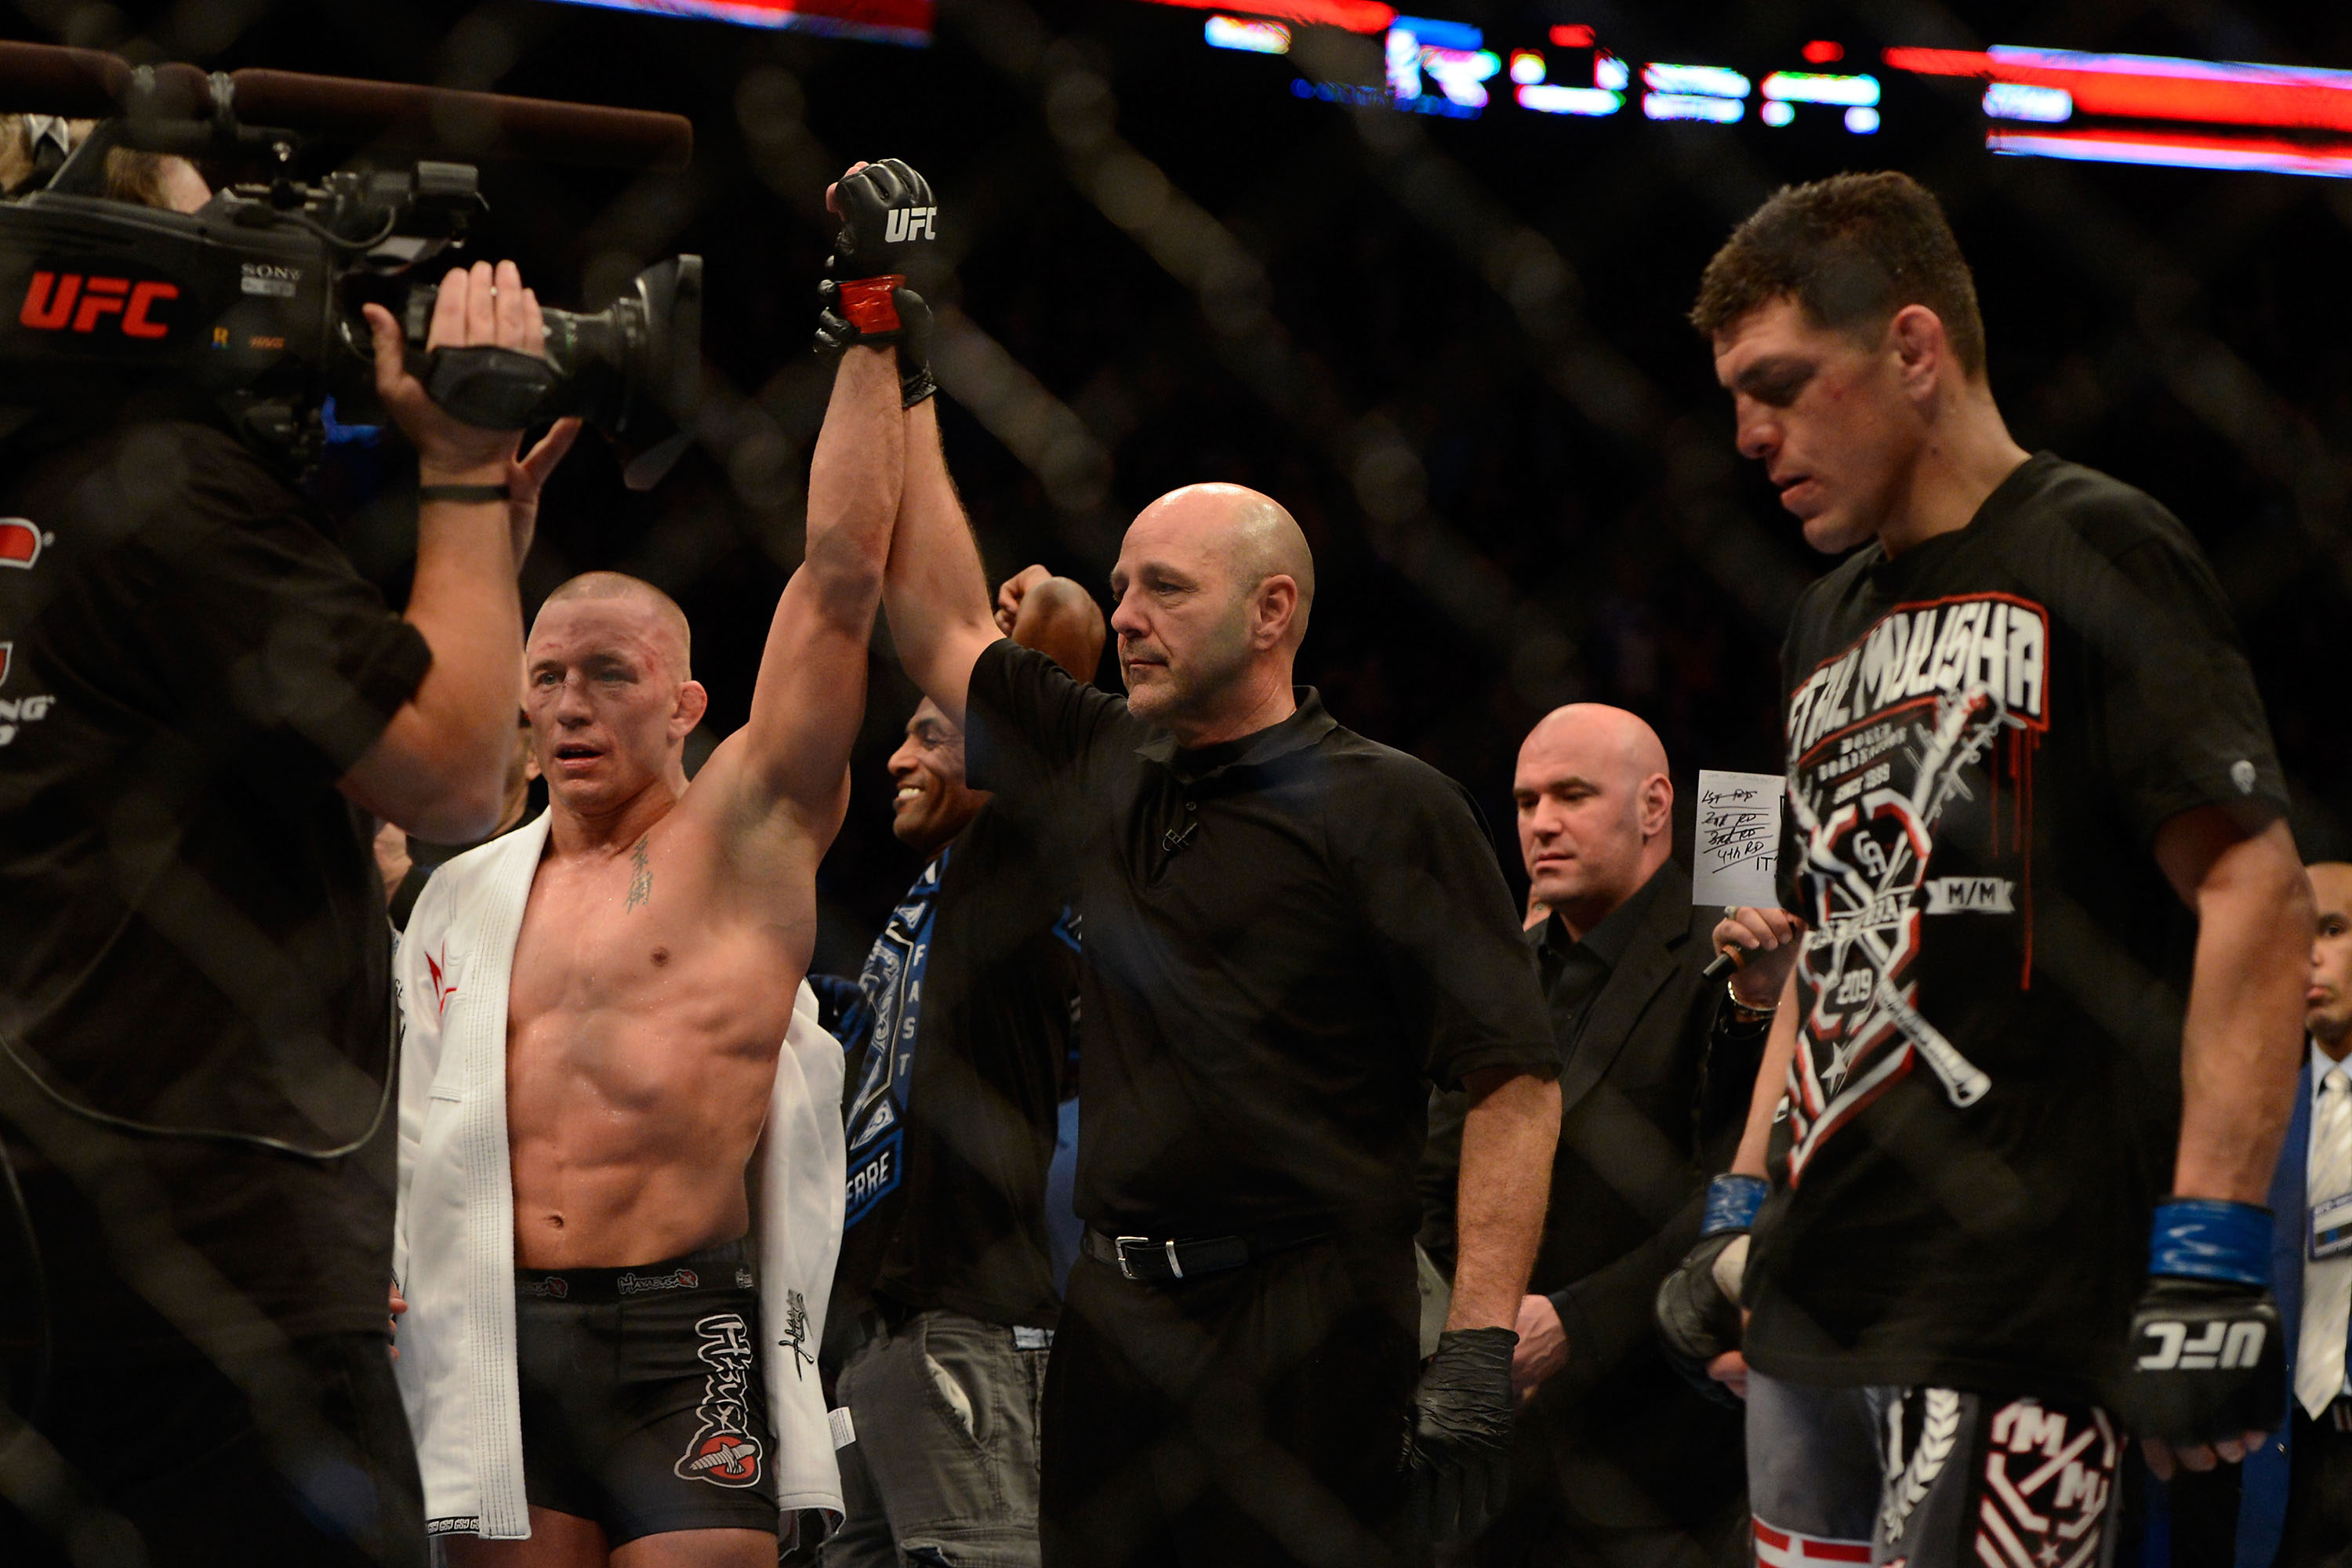 Georges St.Pierre's hand is raised after a win over Nick Diaz. (USA Today Sports)